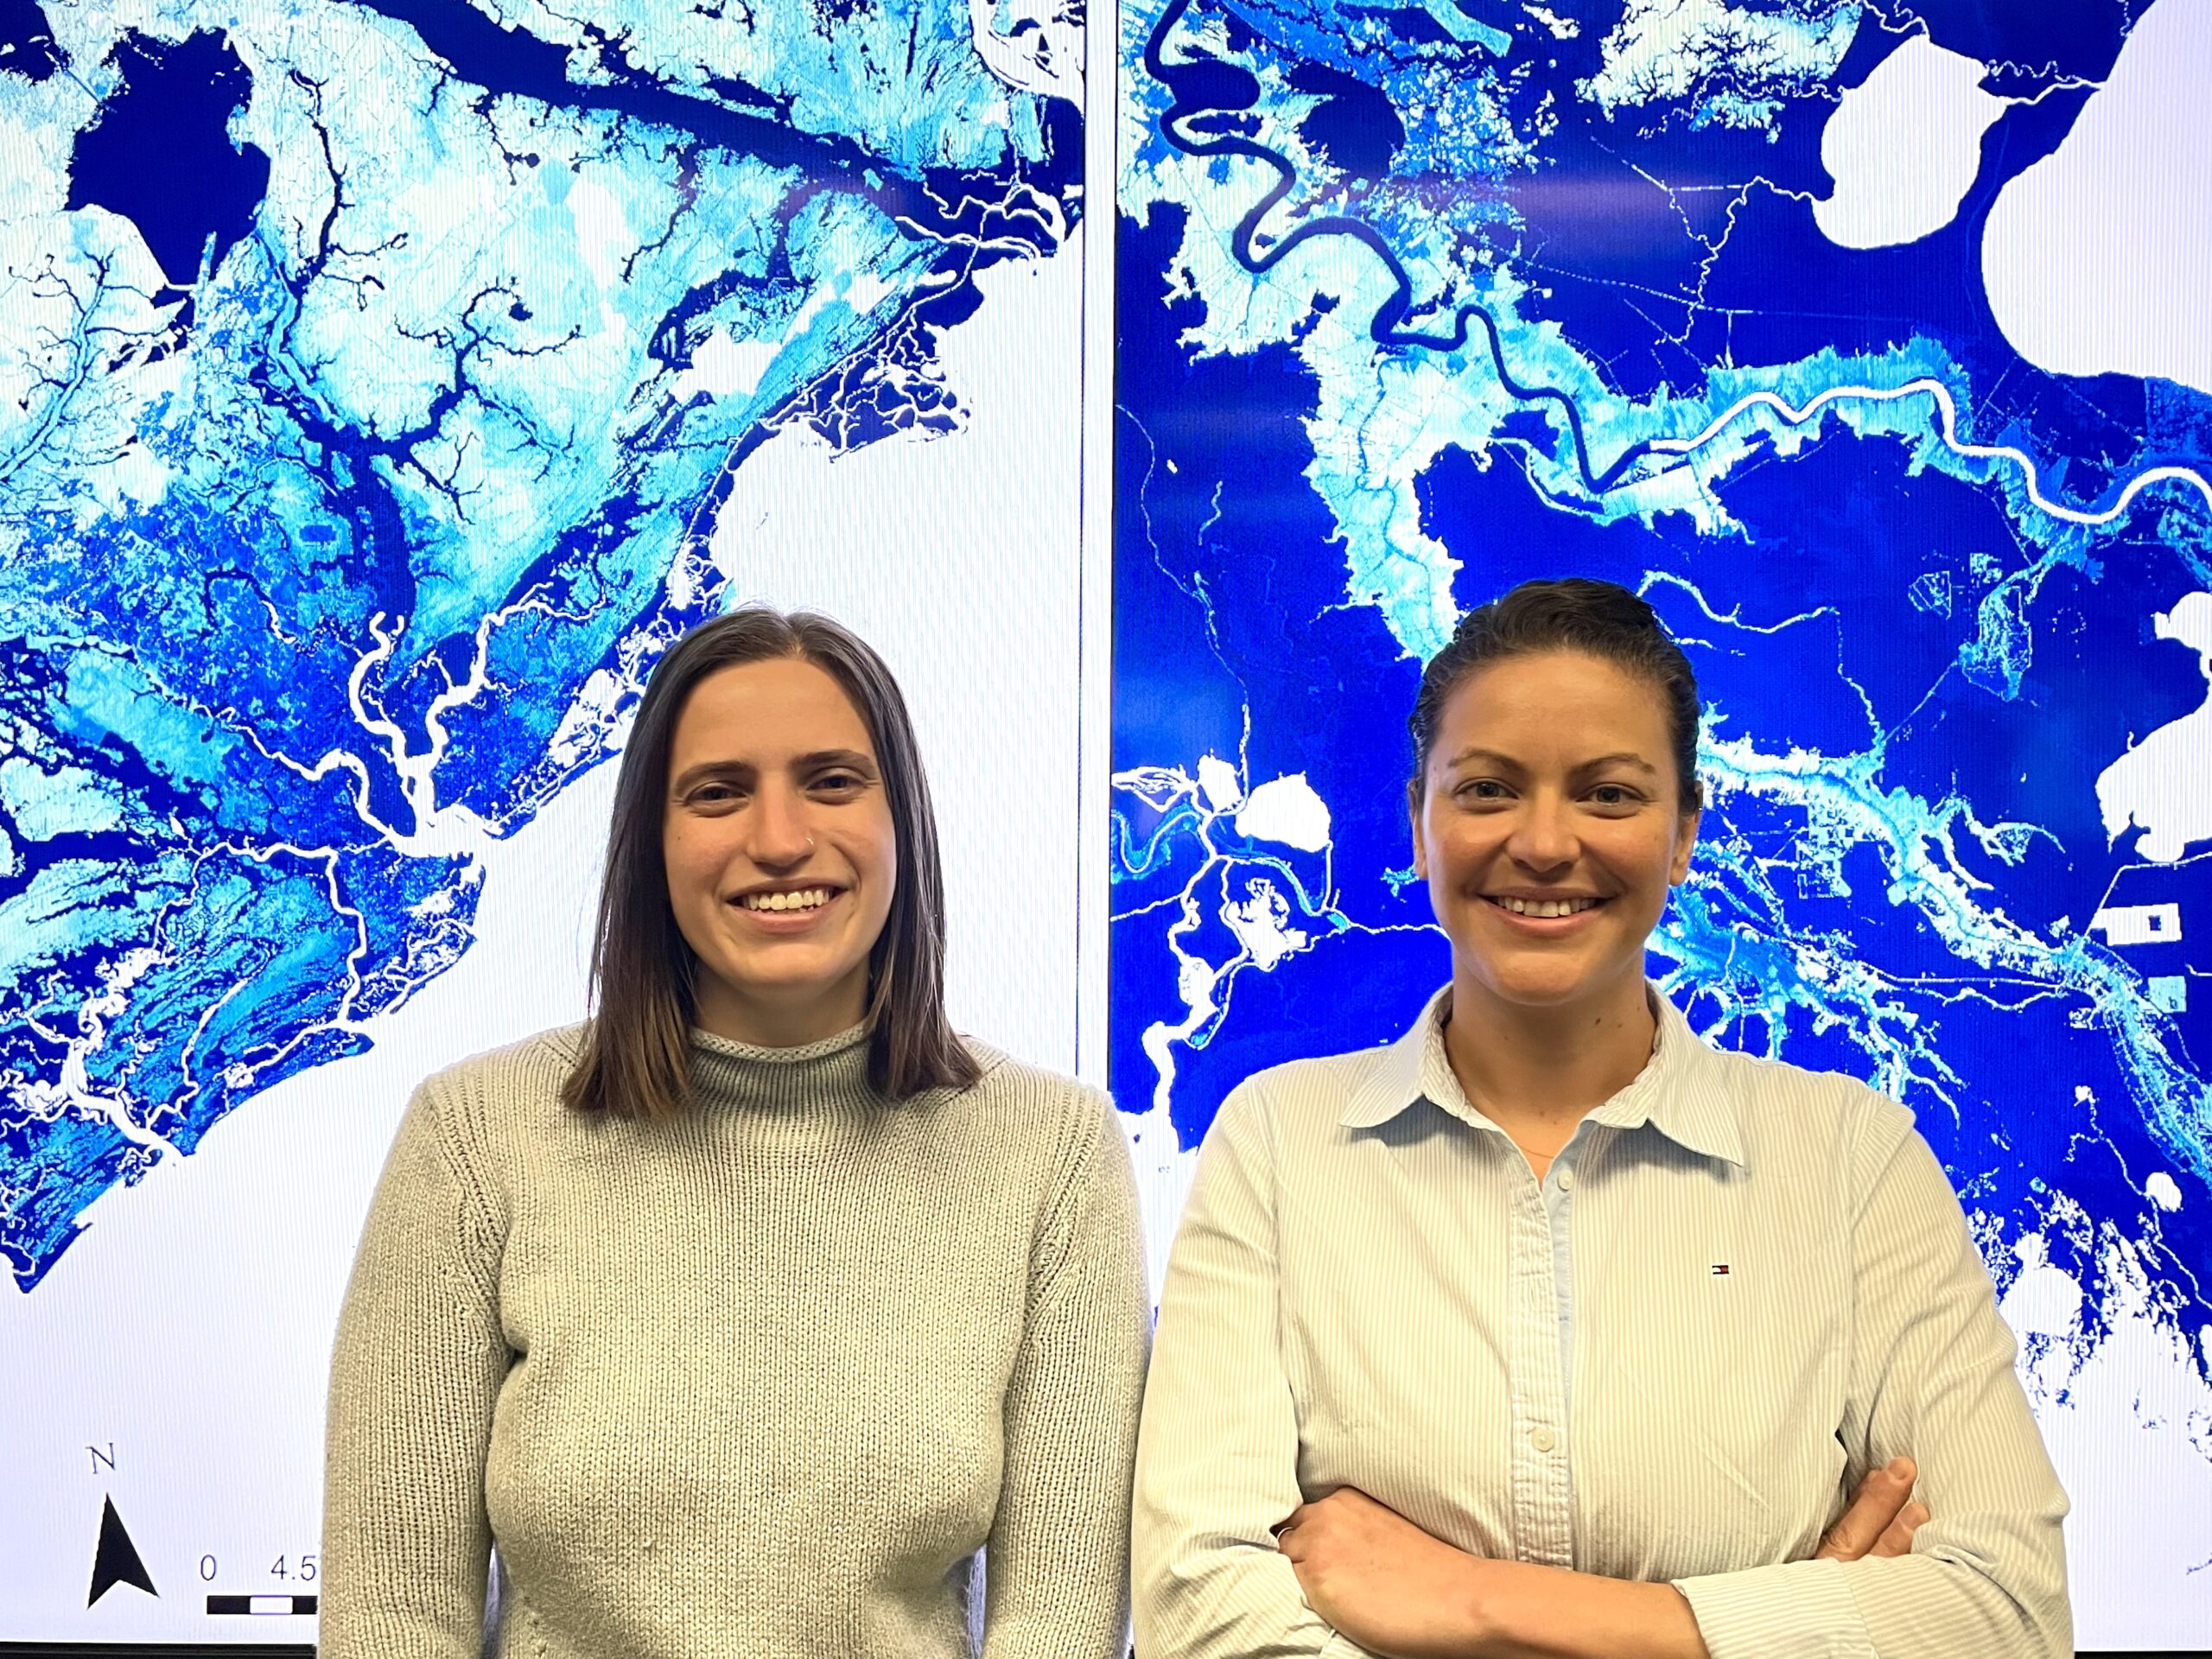 Georgina Sanchez (right) and Elyssa Collins (left) at the Center for Geospatial Analytics are developing state-of-the-art flood mapping that accounts for different climate change scenarios. Credit: NC State's College of Natural Resources.